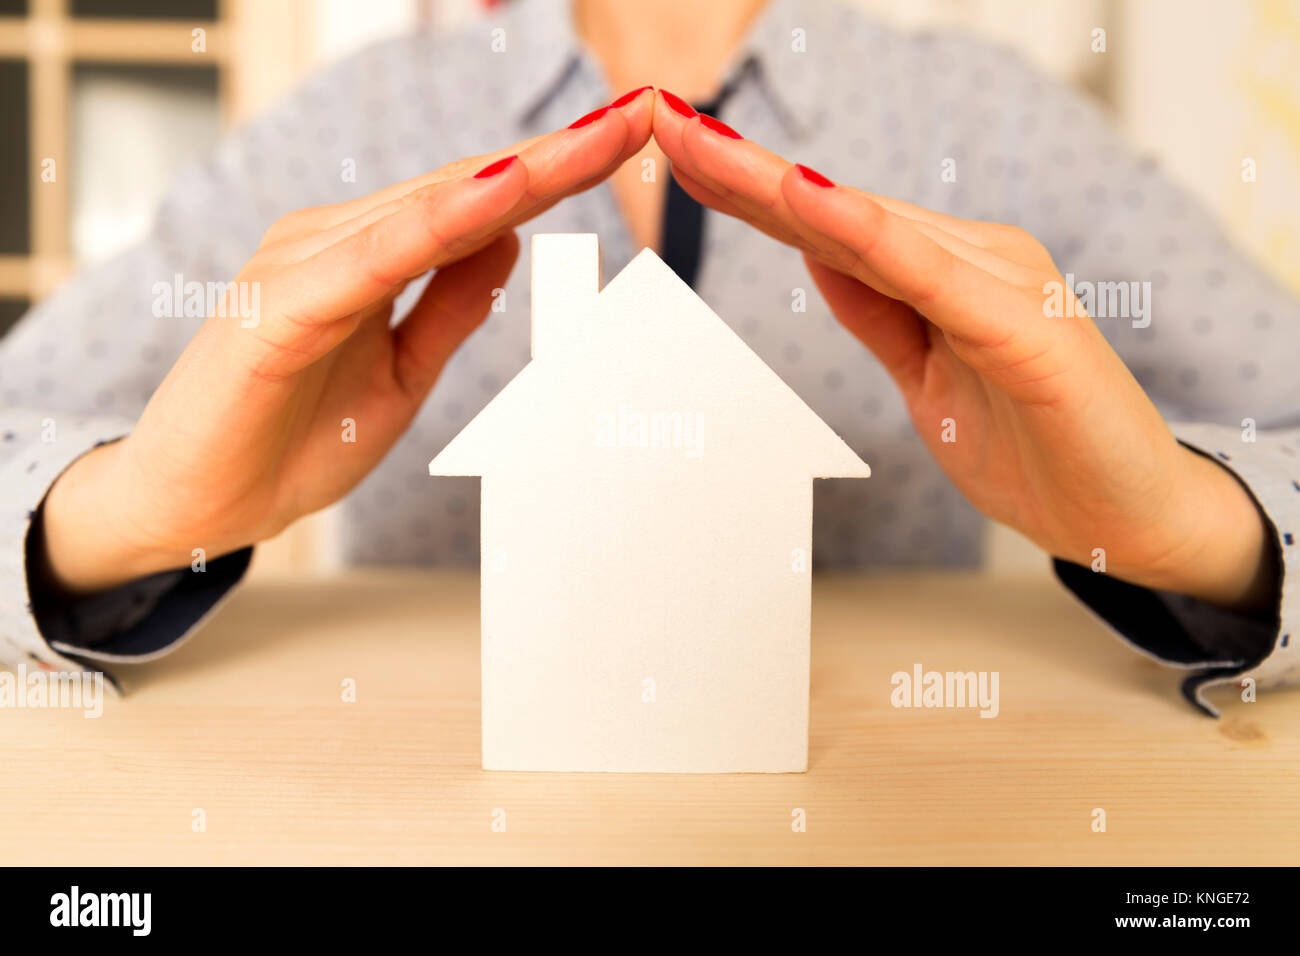 Woman holding her hands above white small model house as a sign of home protection and insurance - Stock Image